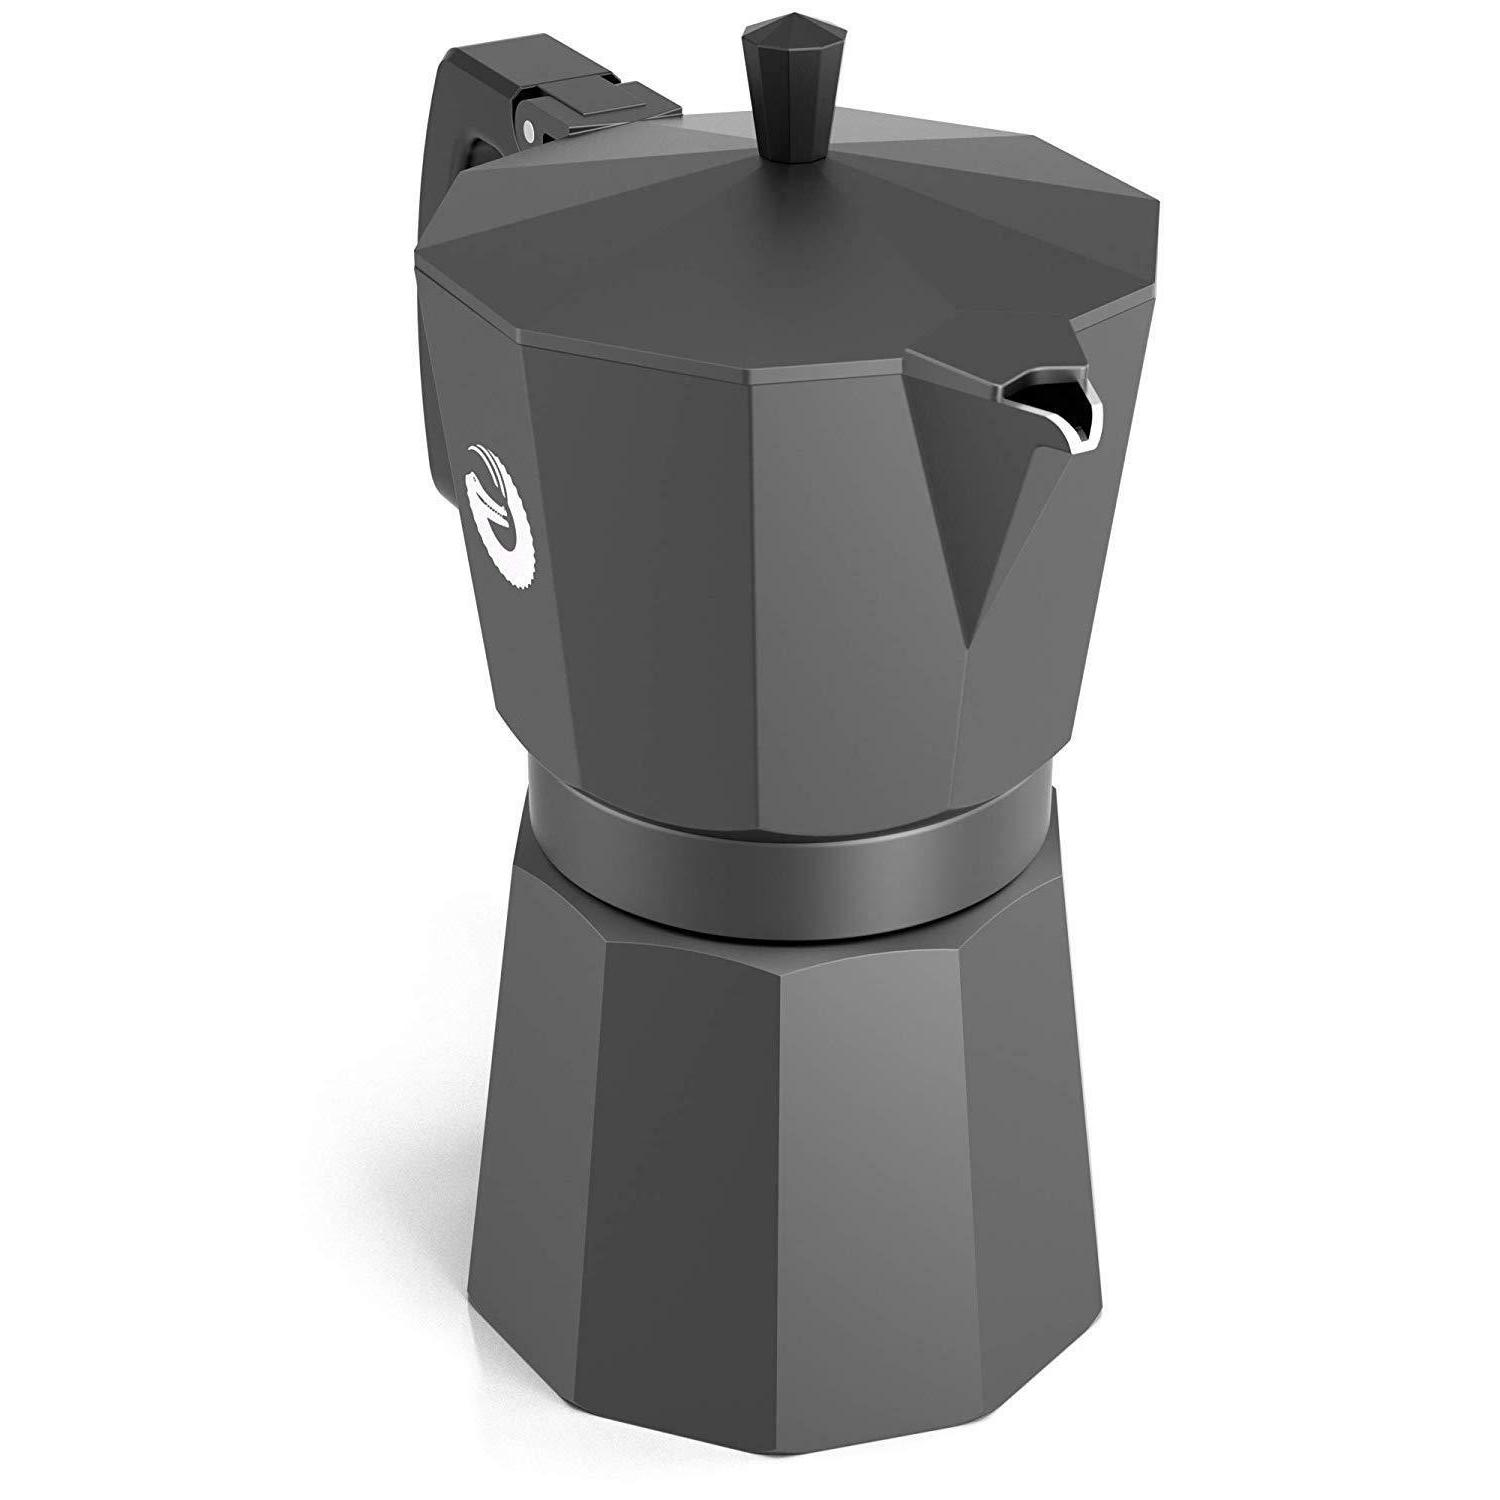 Coffee Gator Espresso Moka Pot Brewer Plus - 12 ounce